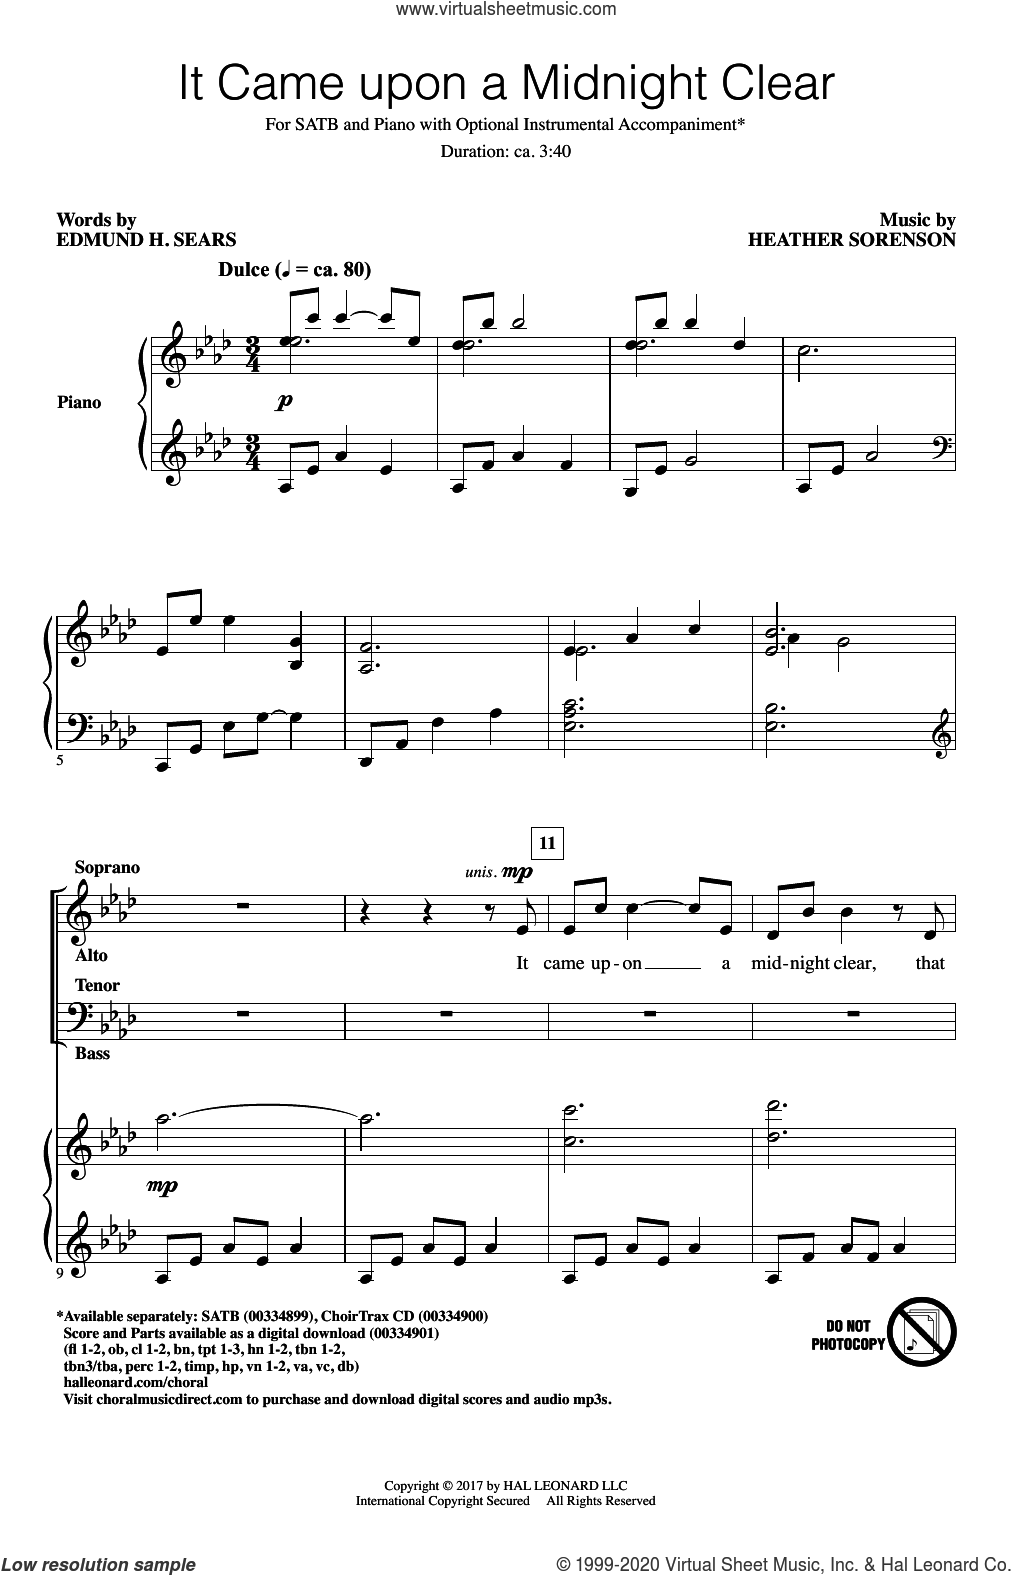 It Came Upon A Midnight Clear sheet music for choir (SATB: soprano, alto, tenor, bass) by Heather Sorenson, Edmund H. Sears and Heather Sorenson and Edmund Hamilton Sears, intermediate skill level